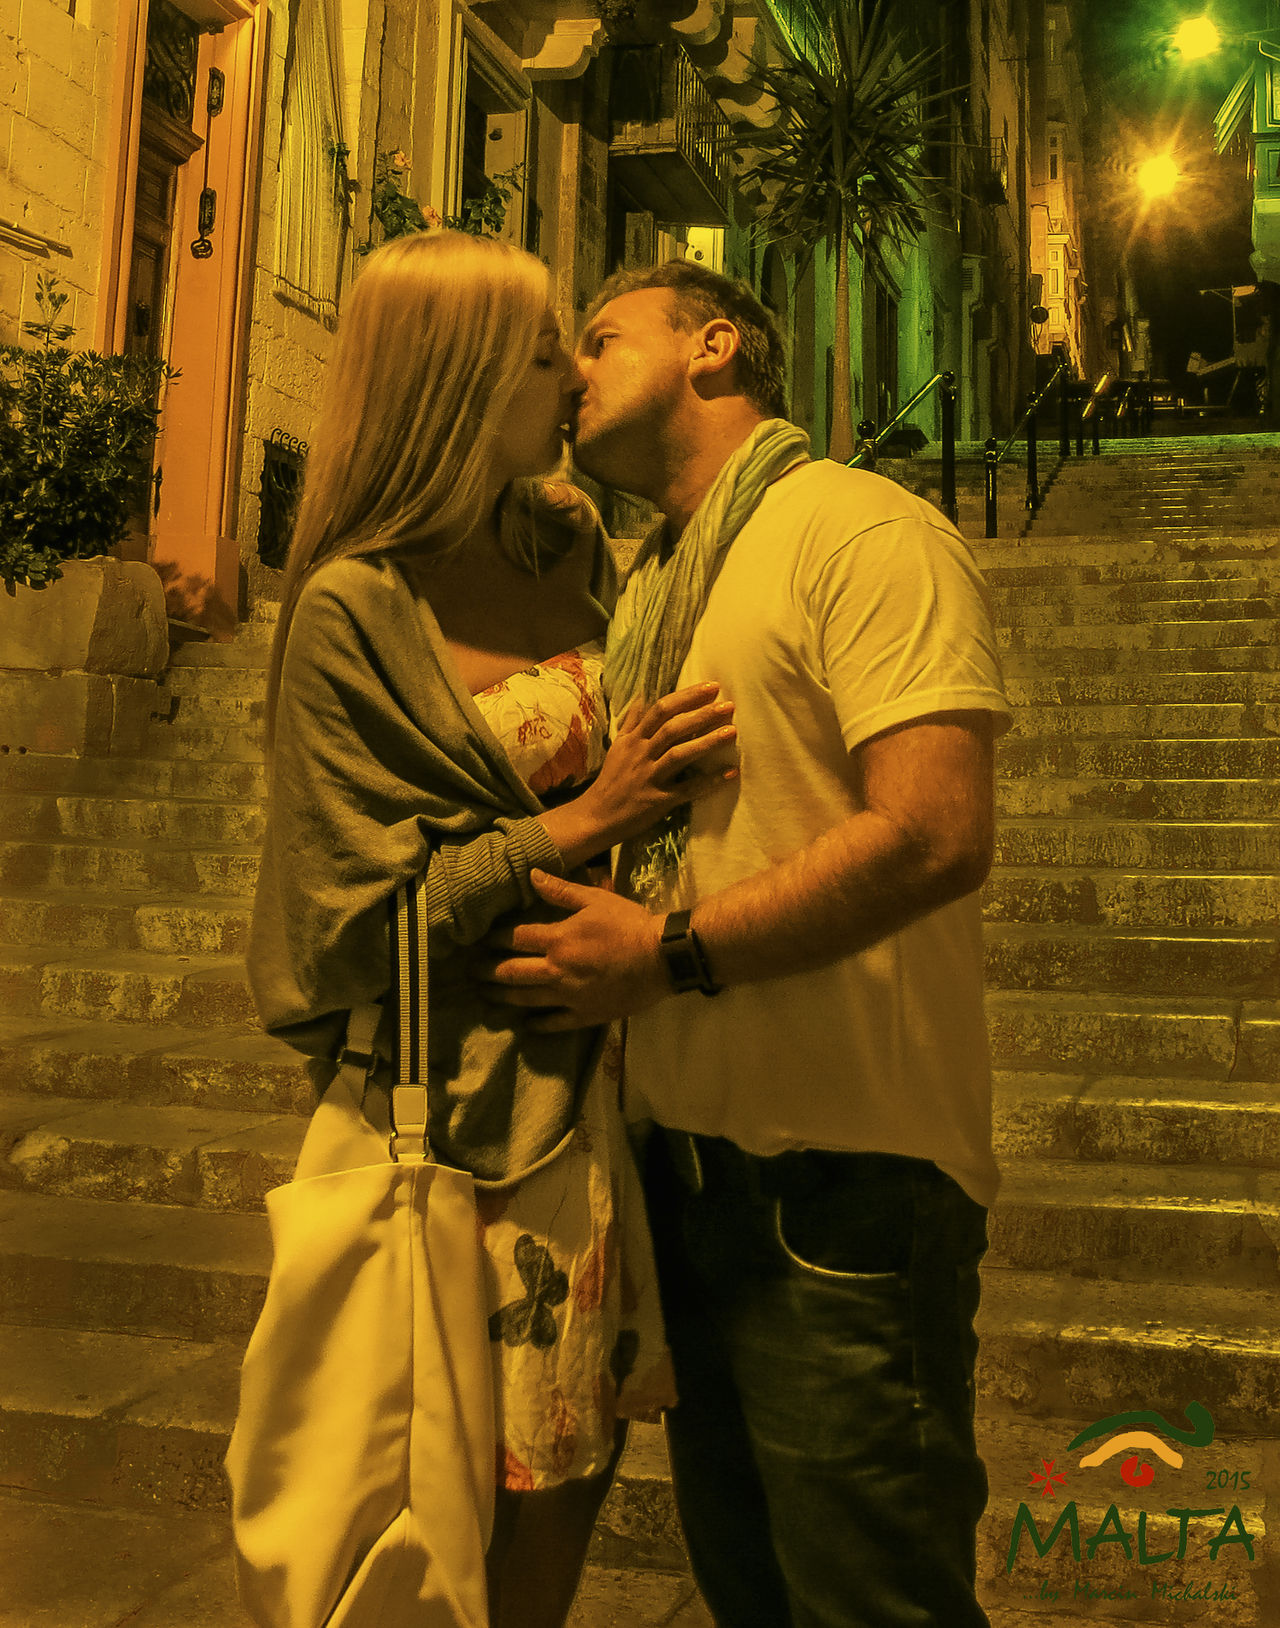 summer 2016 Lovers Malta Man Woman Old Town People Preeety Red Phone Boxes Topaz Hotel